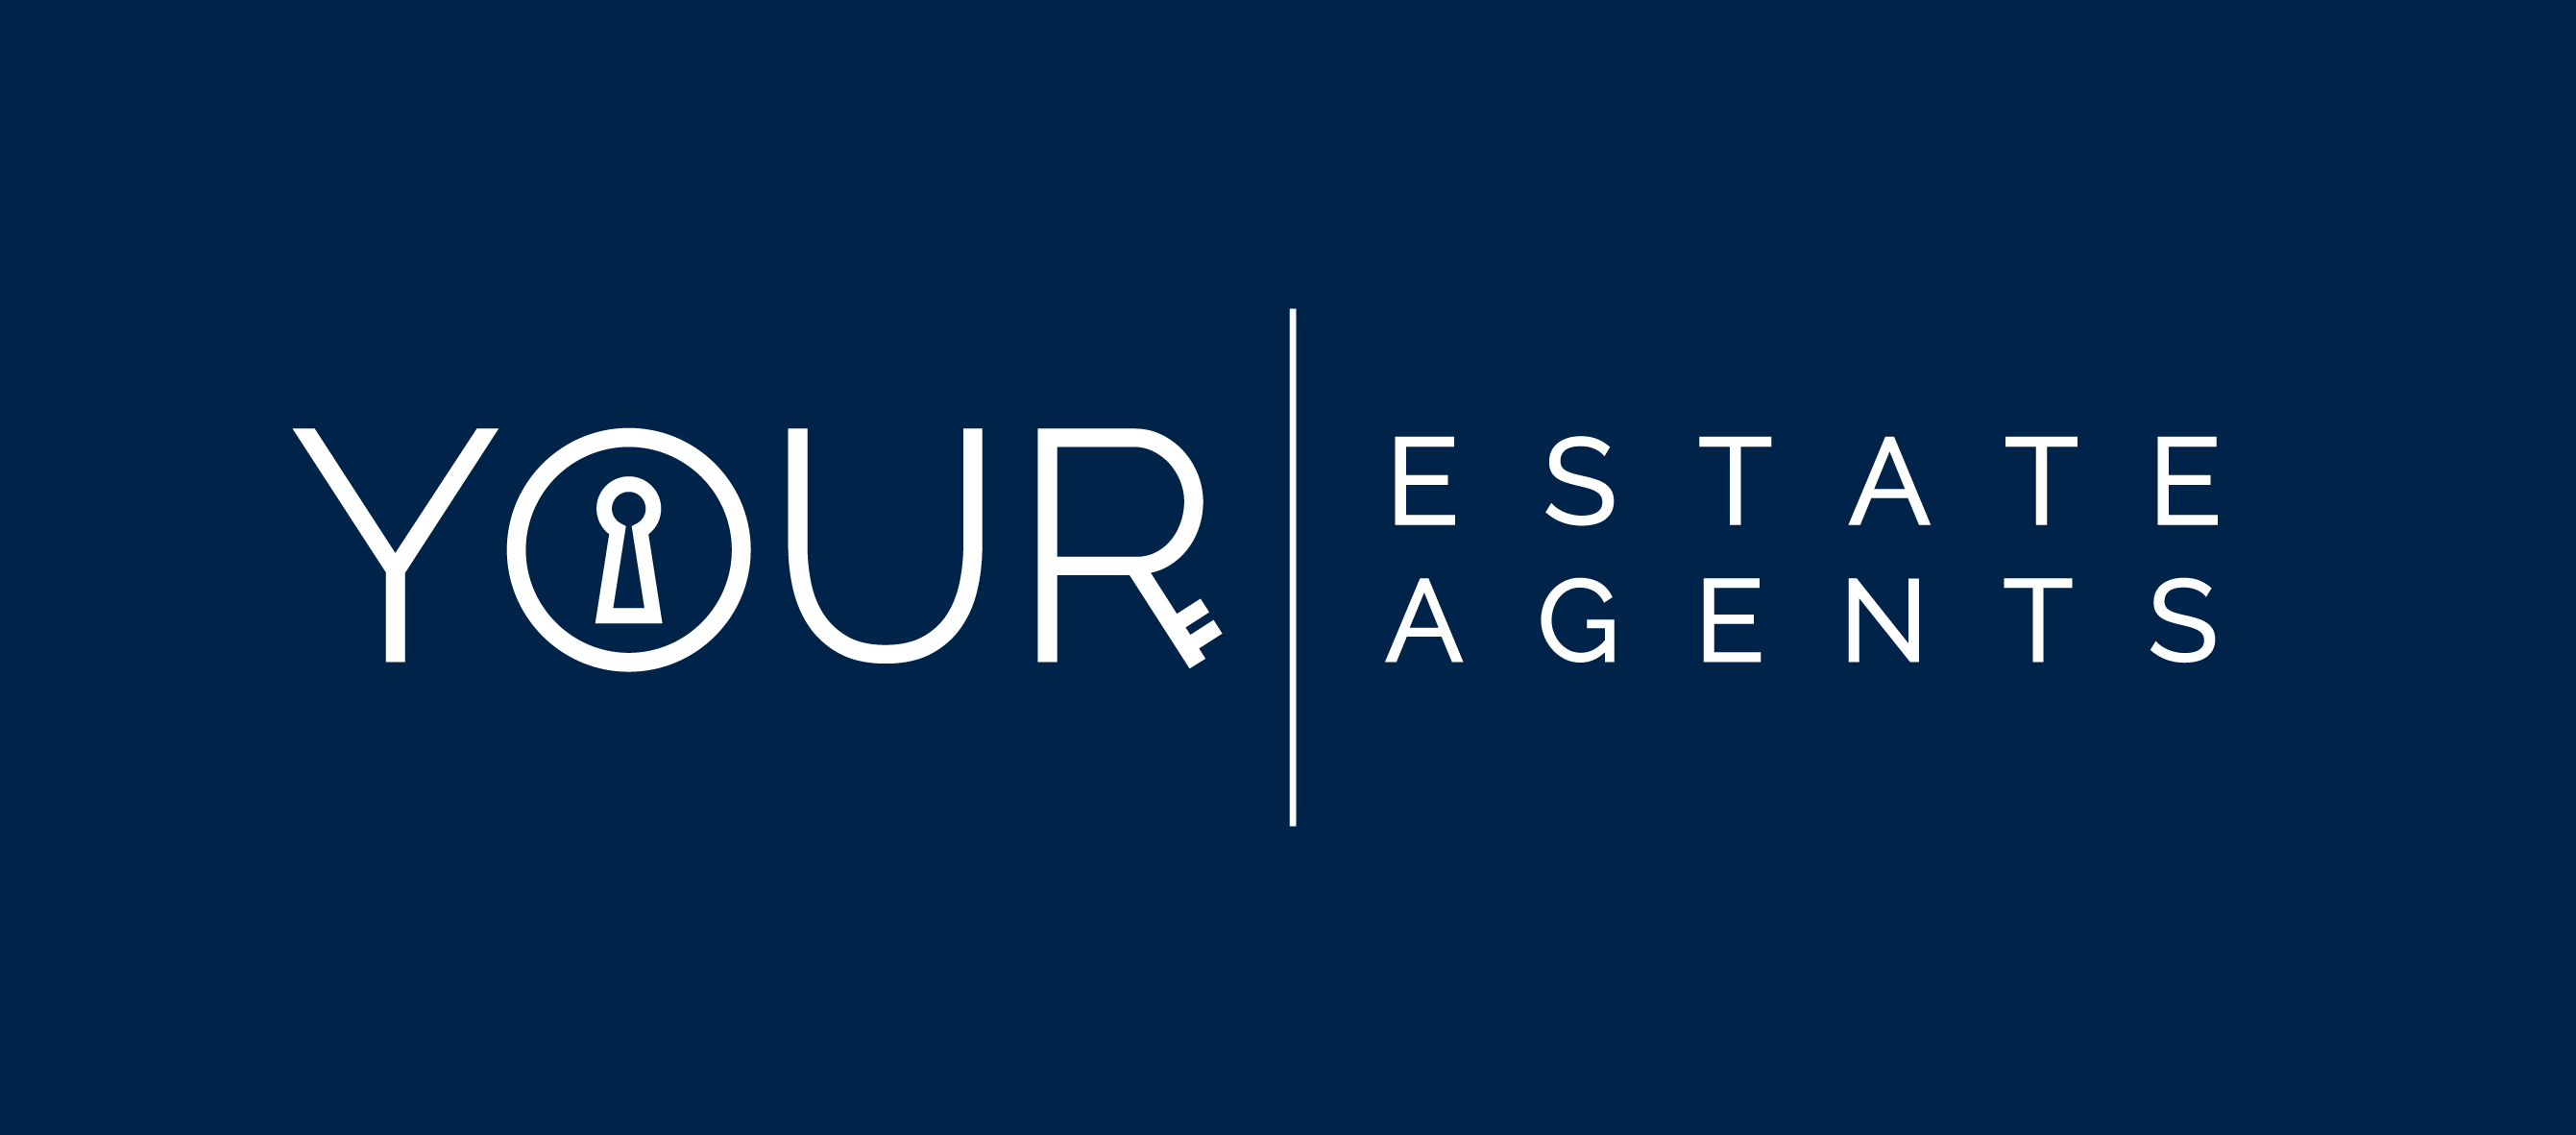 Your Estate Agents, Eight Mile Plains, 4113